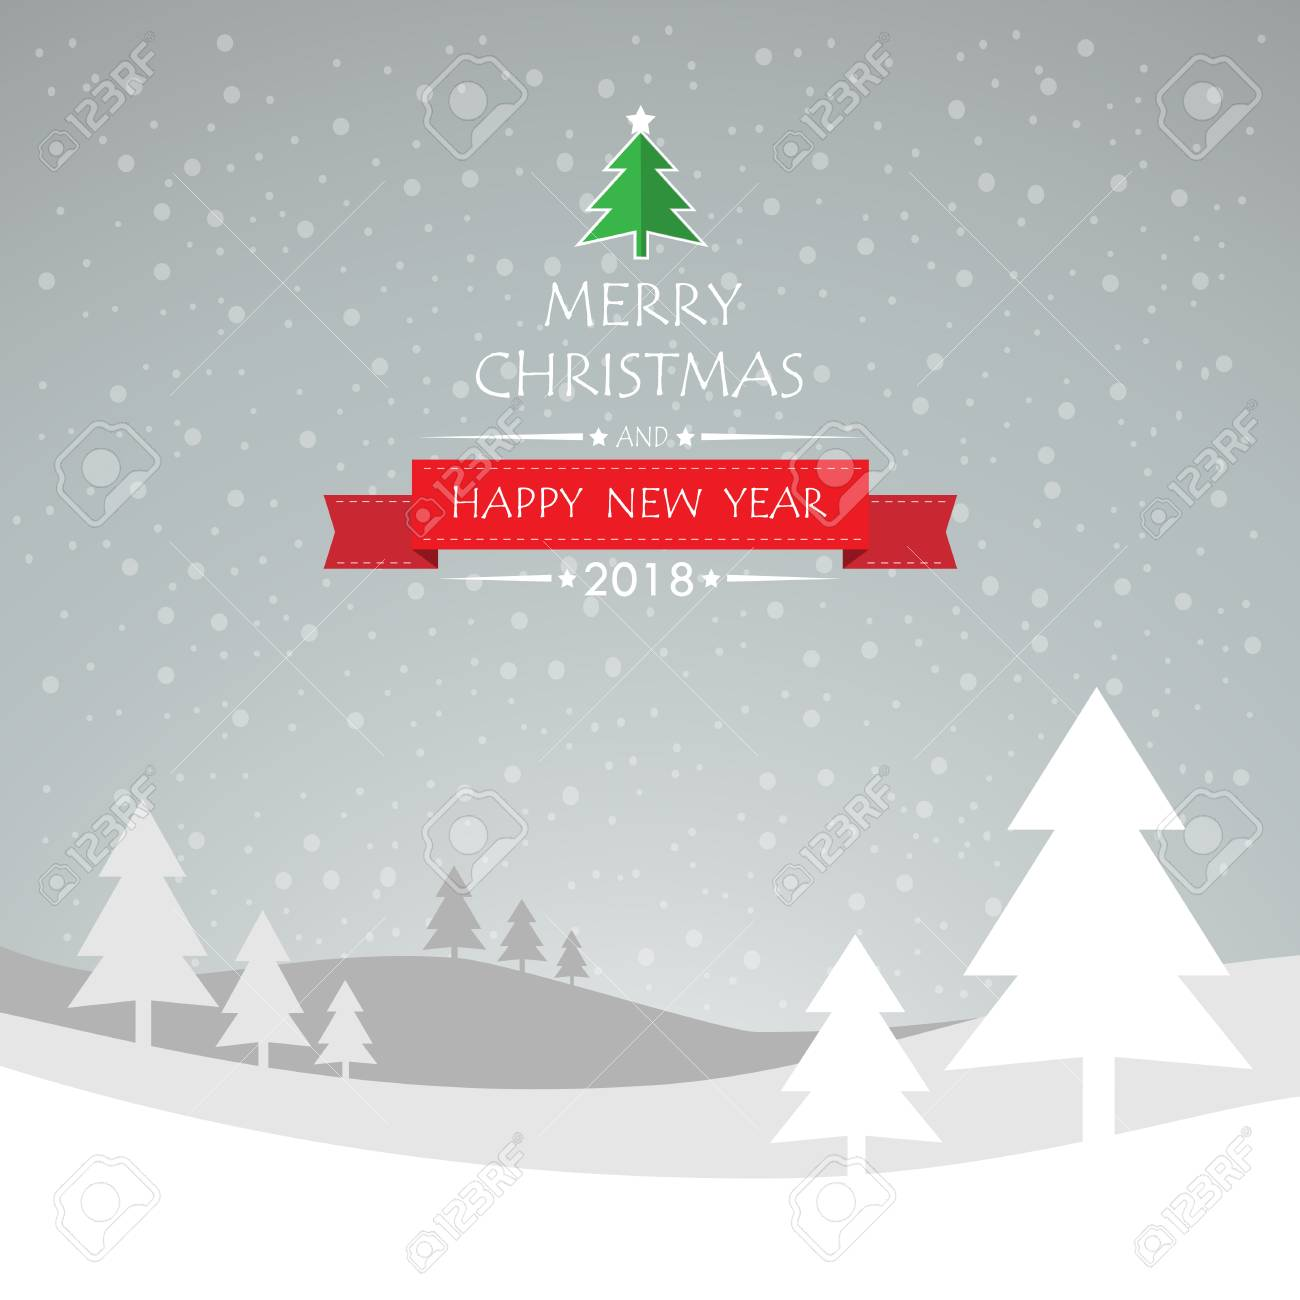 Design Christmas Greeting Card And Happy New Year Message Vector